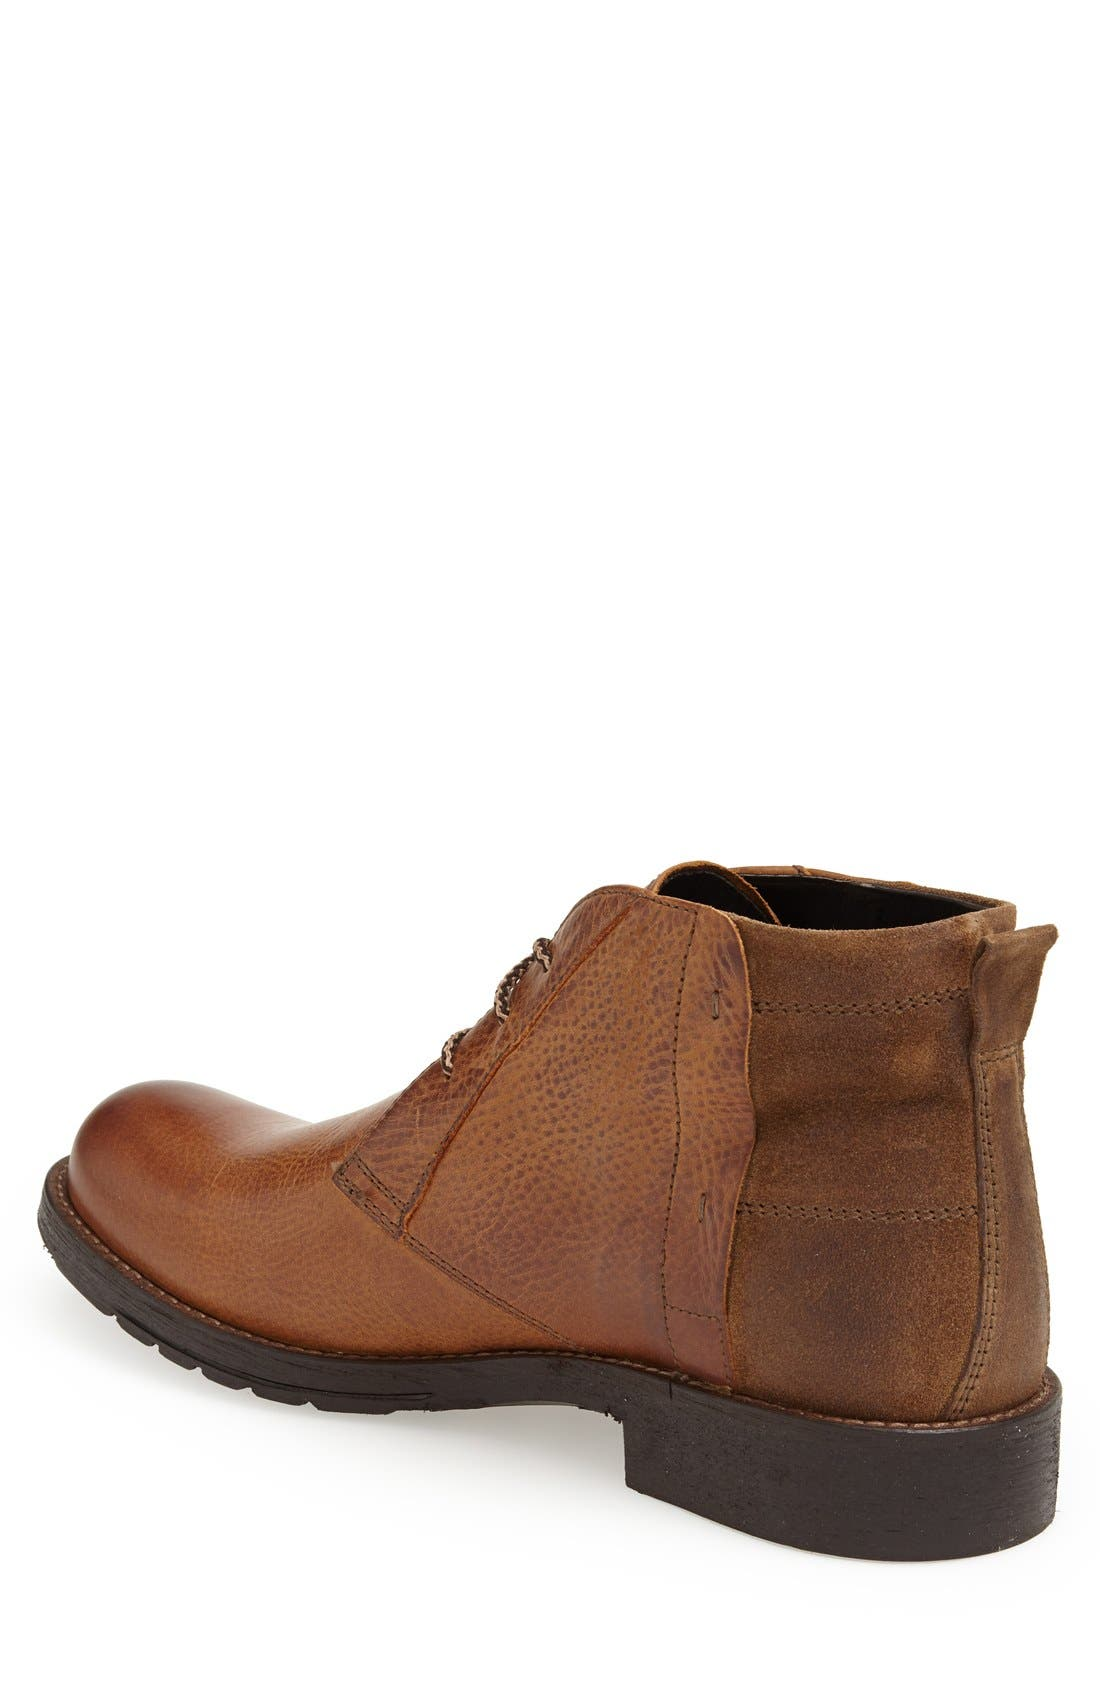 Alternate Image 2  - J&M 1850 'Nordeman' Chukka Boot (Men)